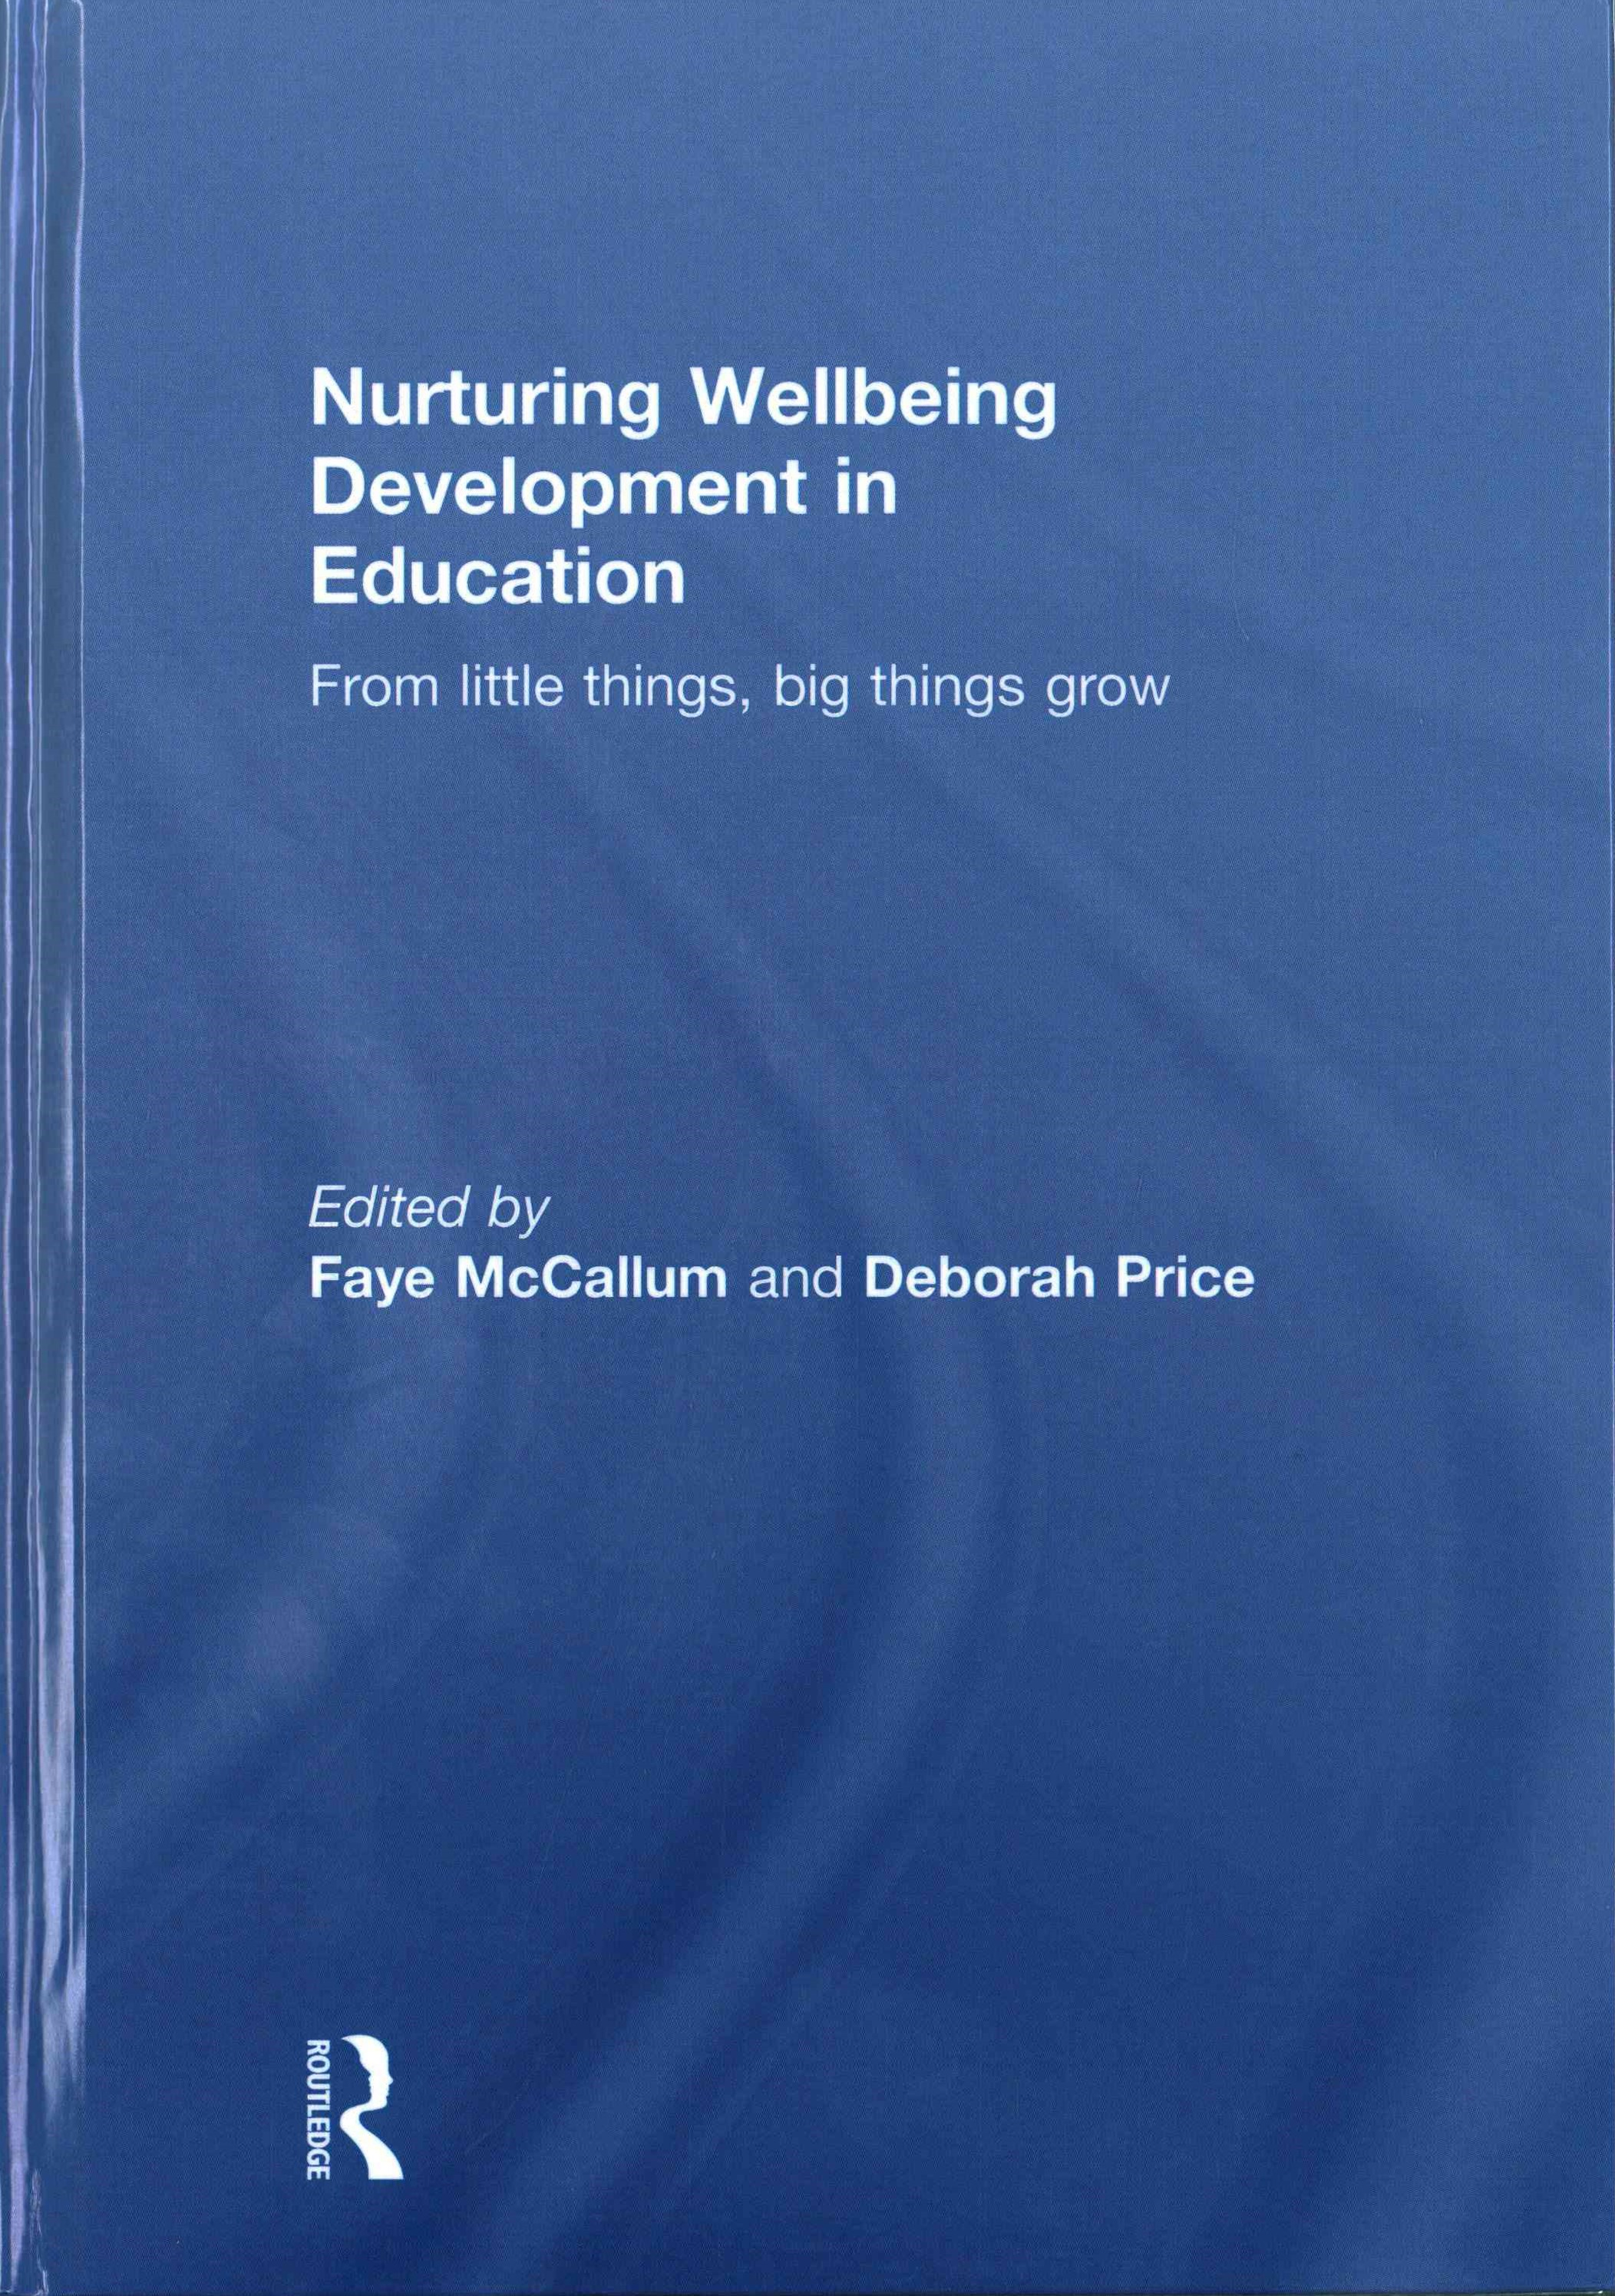 Nurturing Wellbeing Development in Education